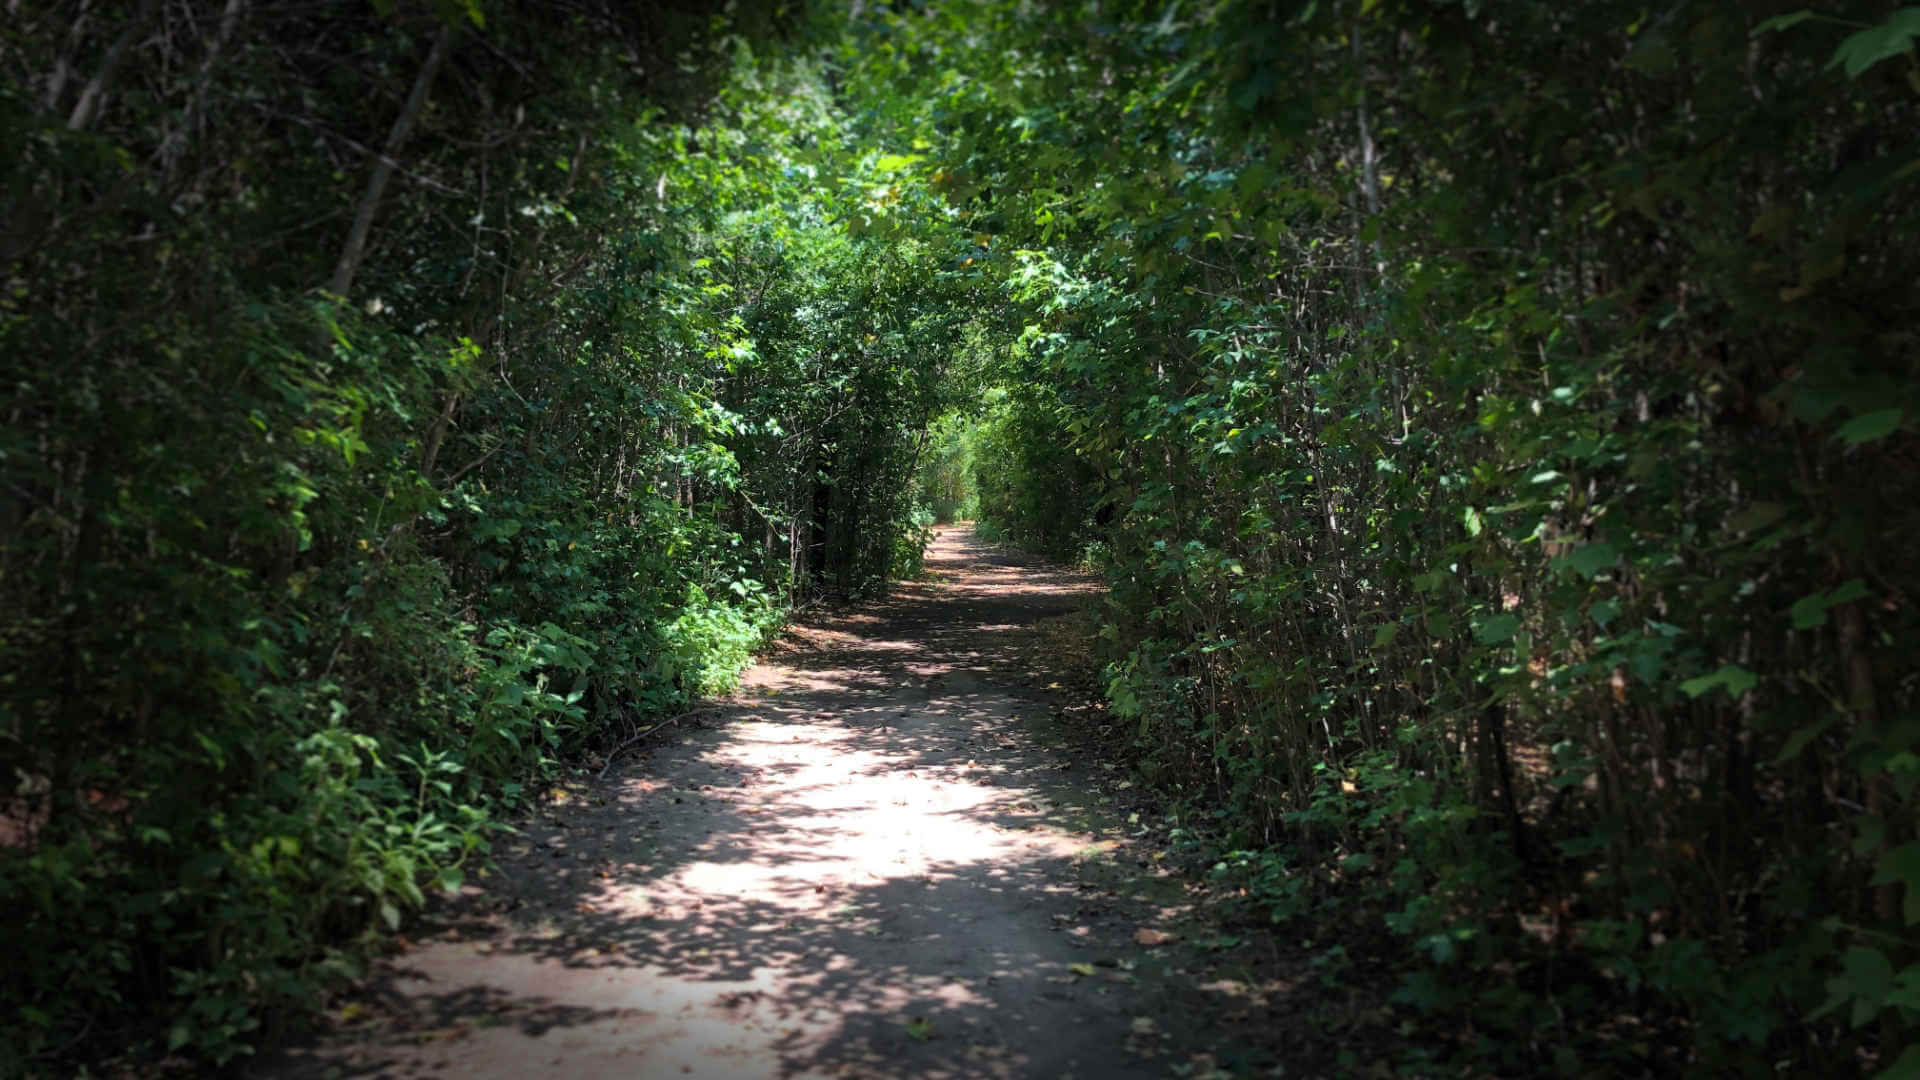 Hiking a nearby state park trail, an excellent staycation idea to get you out into nature.